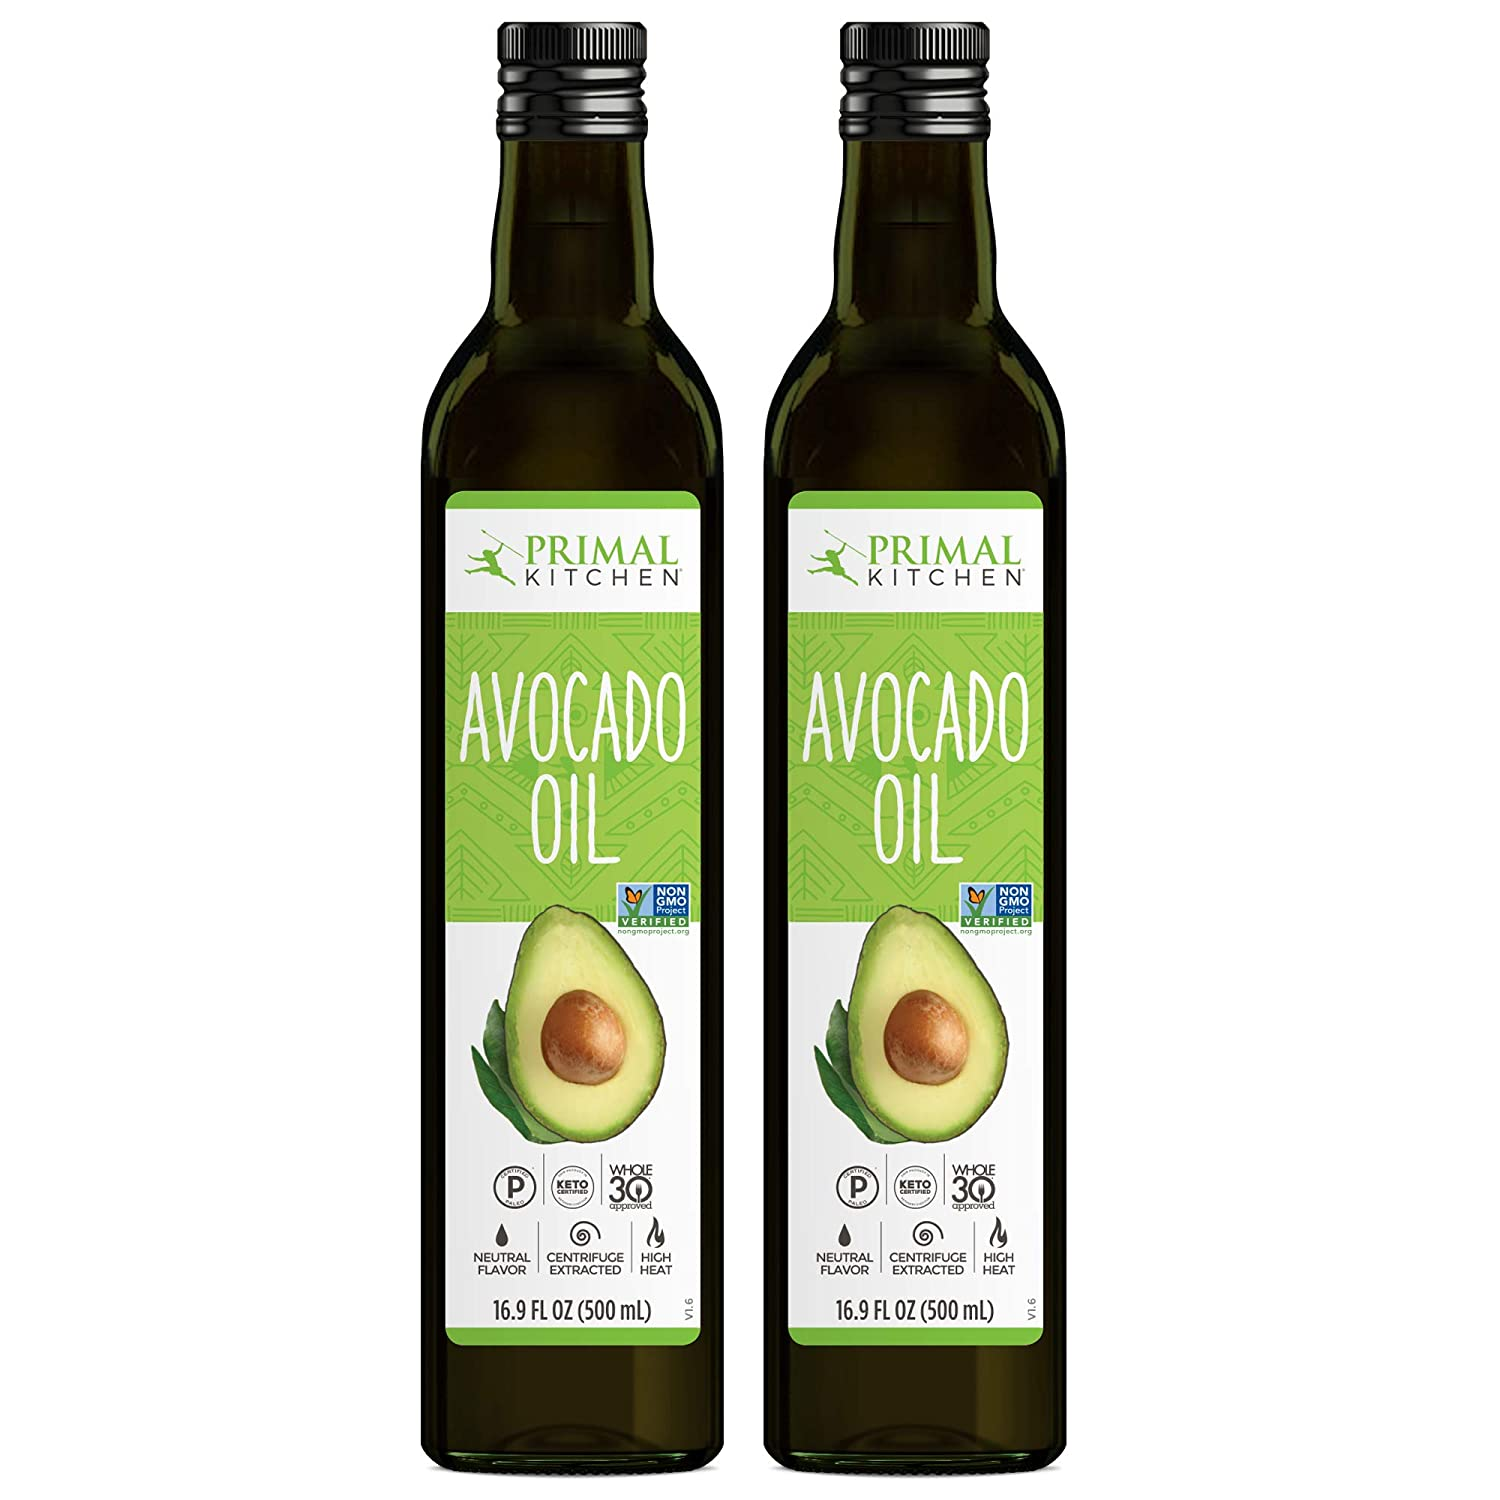 Primal Kitchen - Avocado Oil Whole and Paleo Frien 30 Boston Mall OFFicial shop Approved